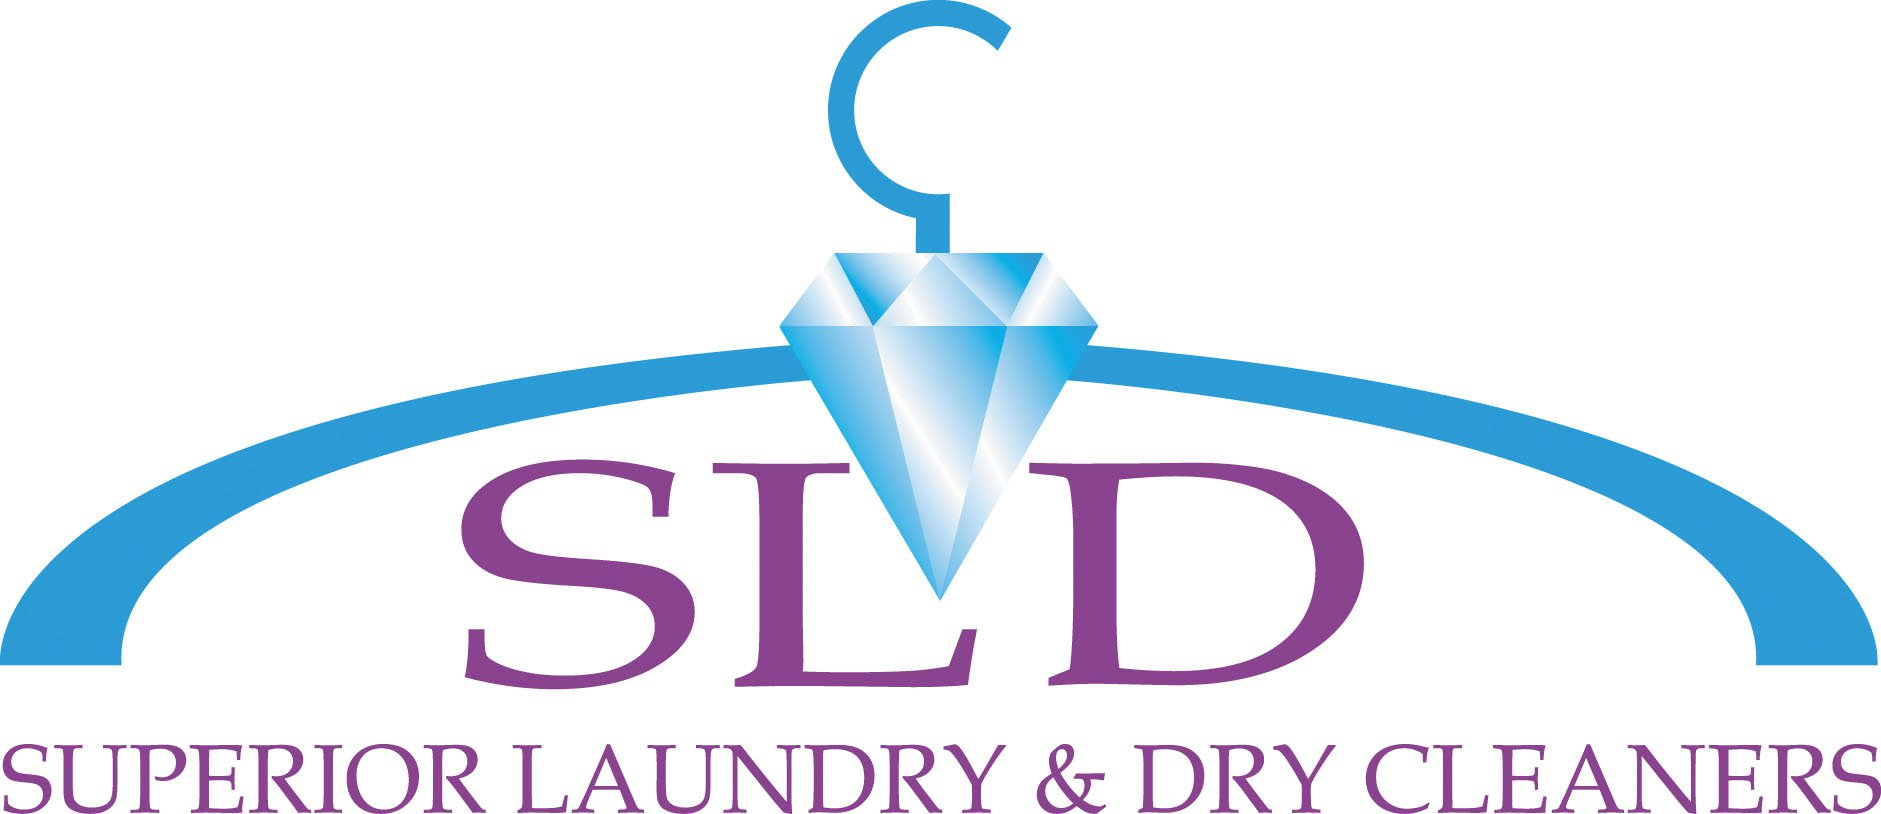 Superior Laundry and Dry Cleaners